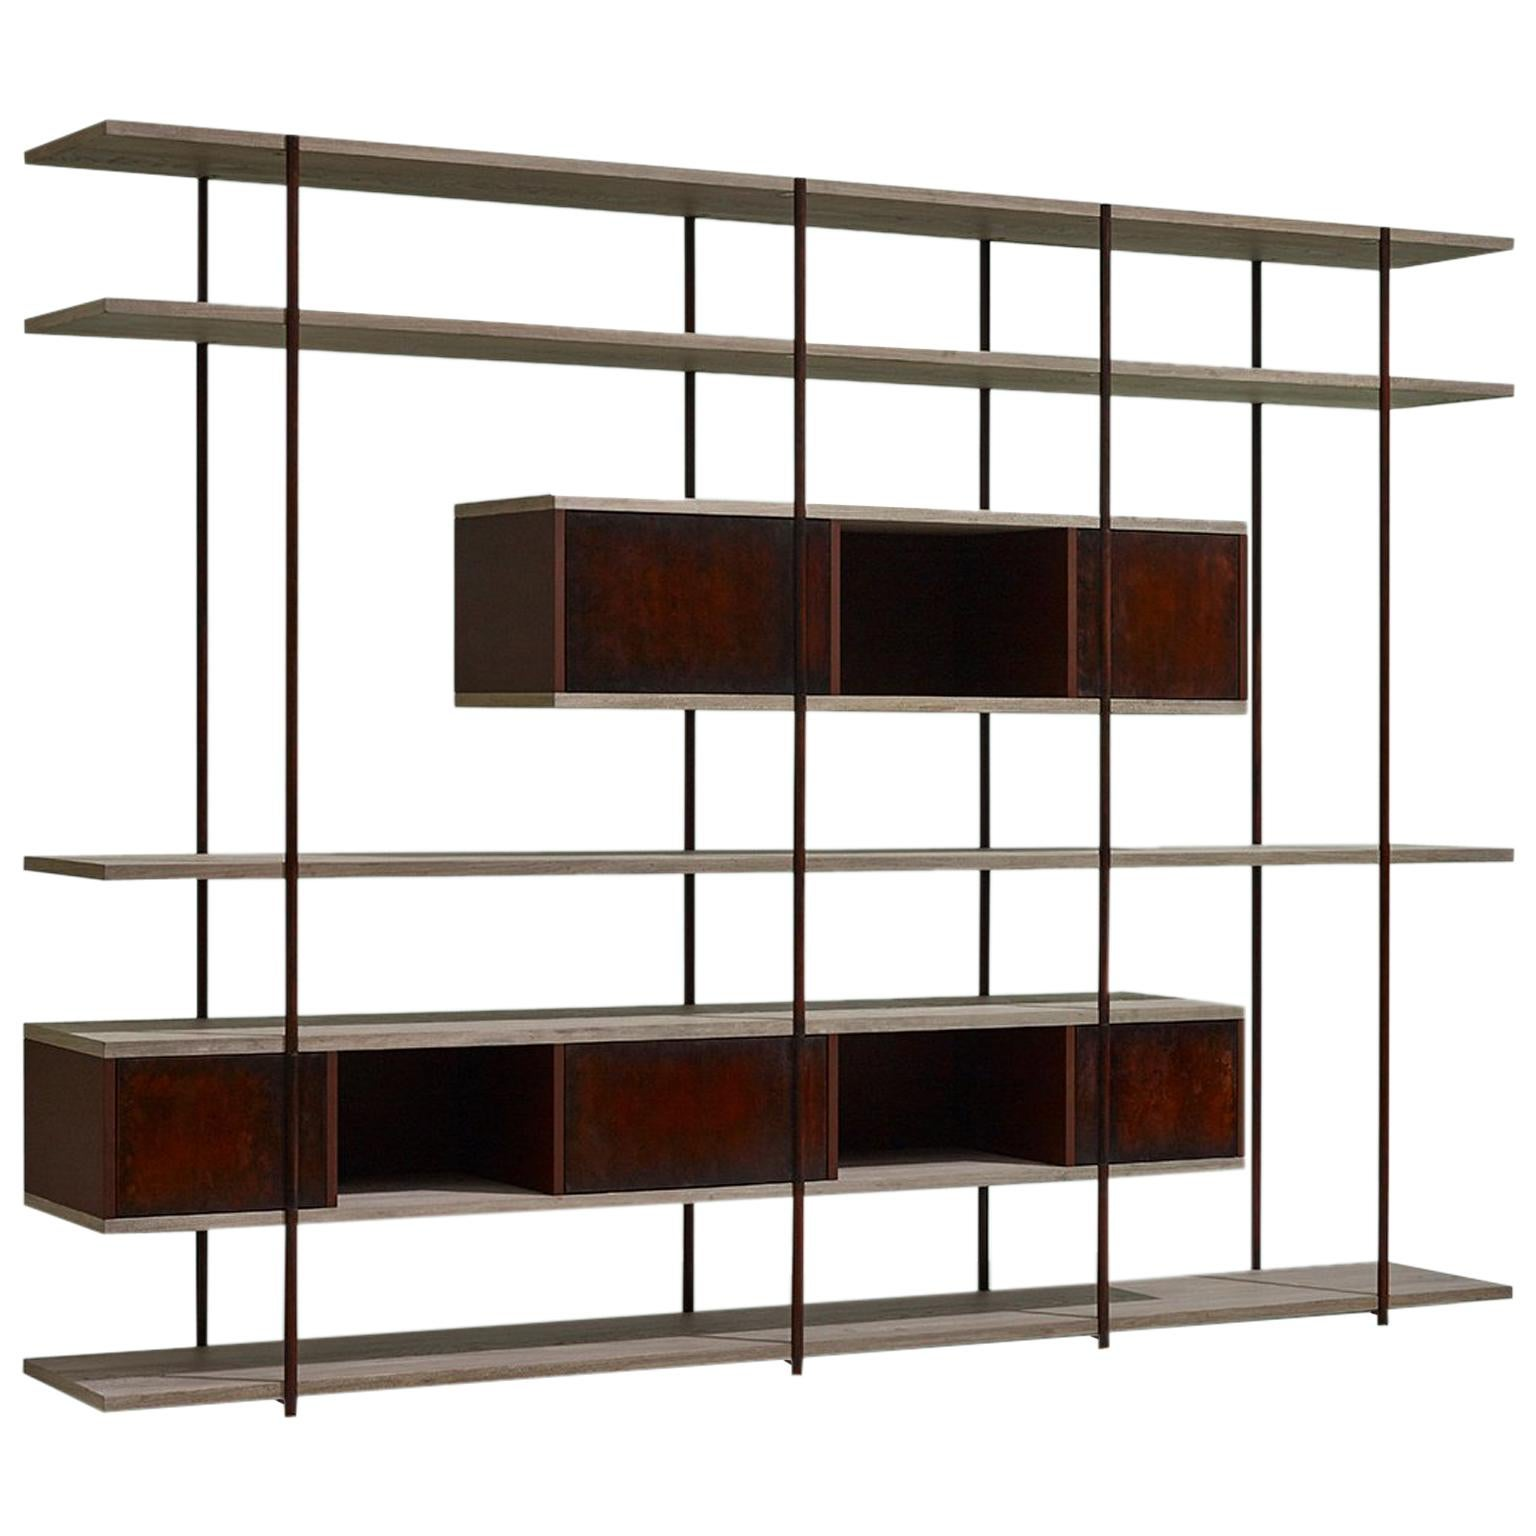 Contemporary Bookcase C Etched Brass Pivoting Doors And Stone Elm Shelves